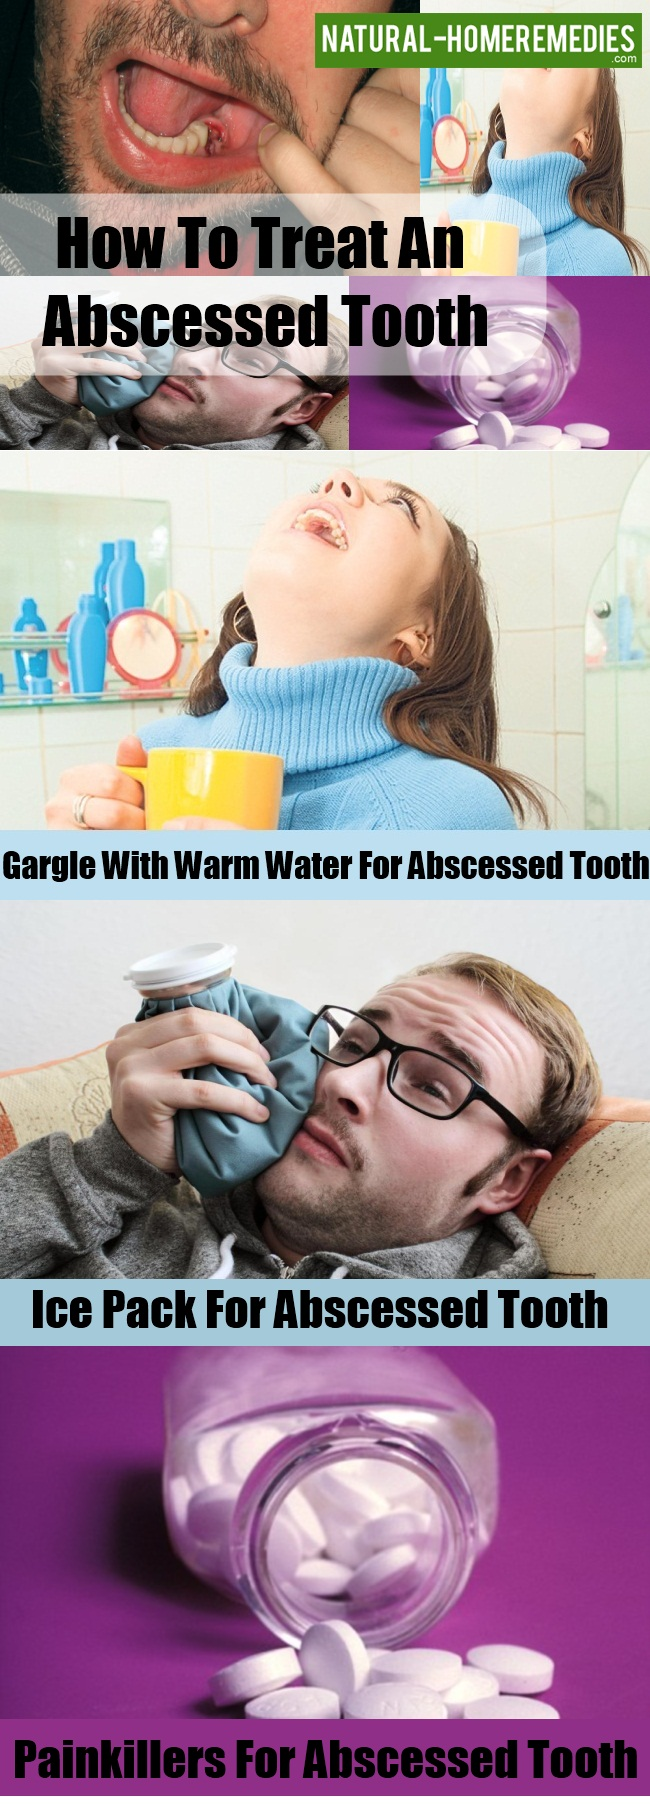 Treatments of Abscessed Tooth